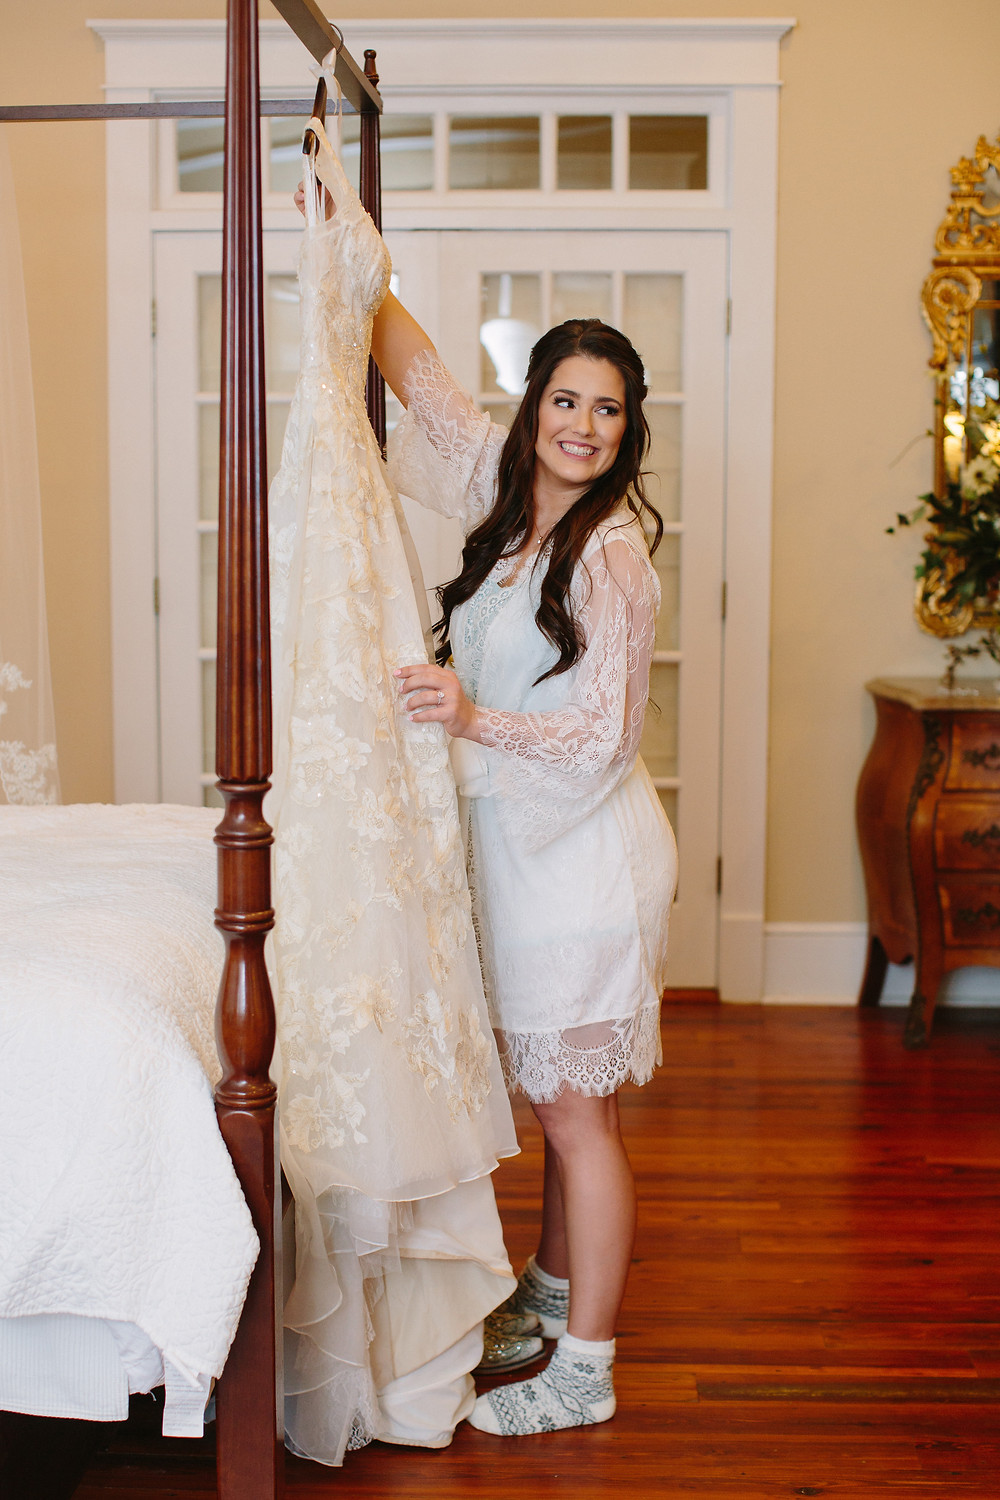 Bride and Dress | Two Chics Photography